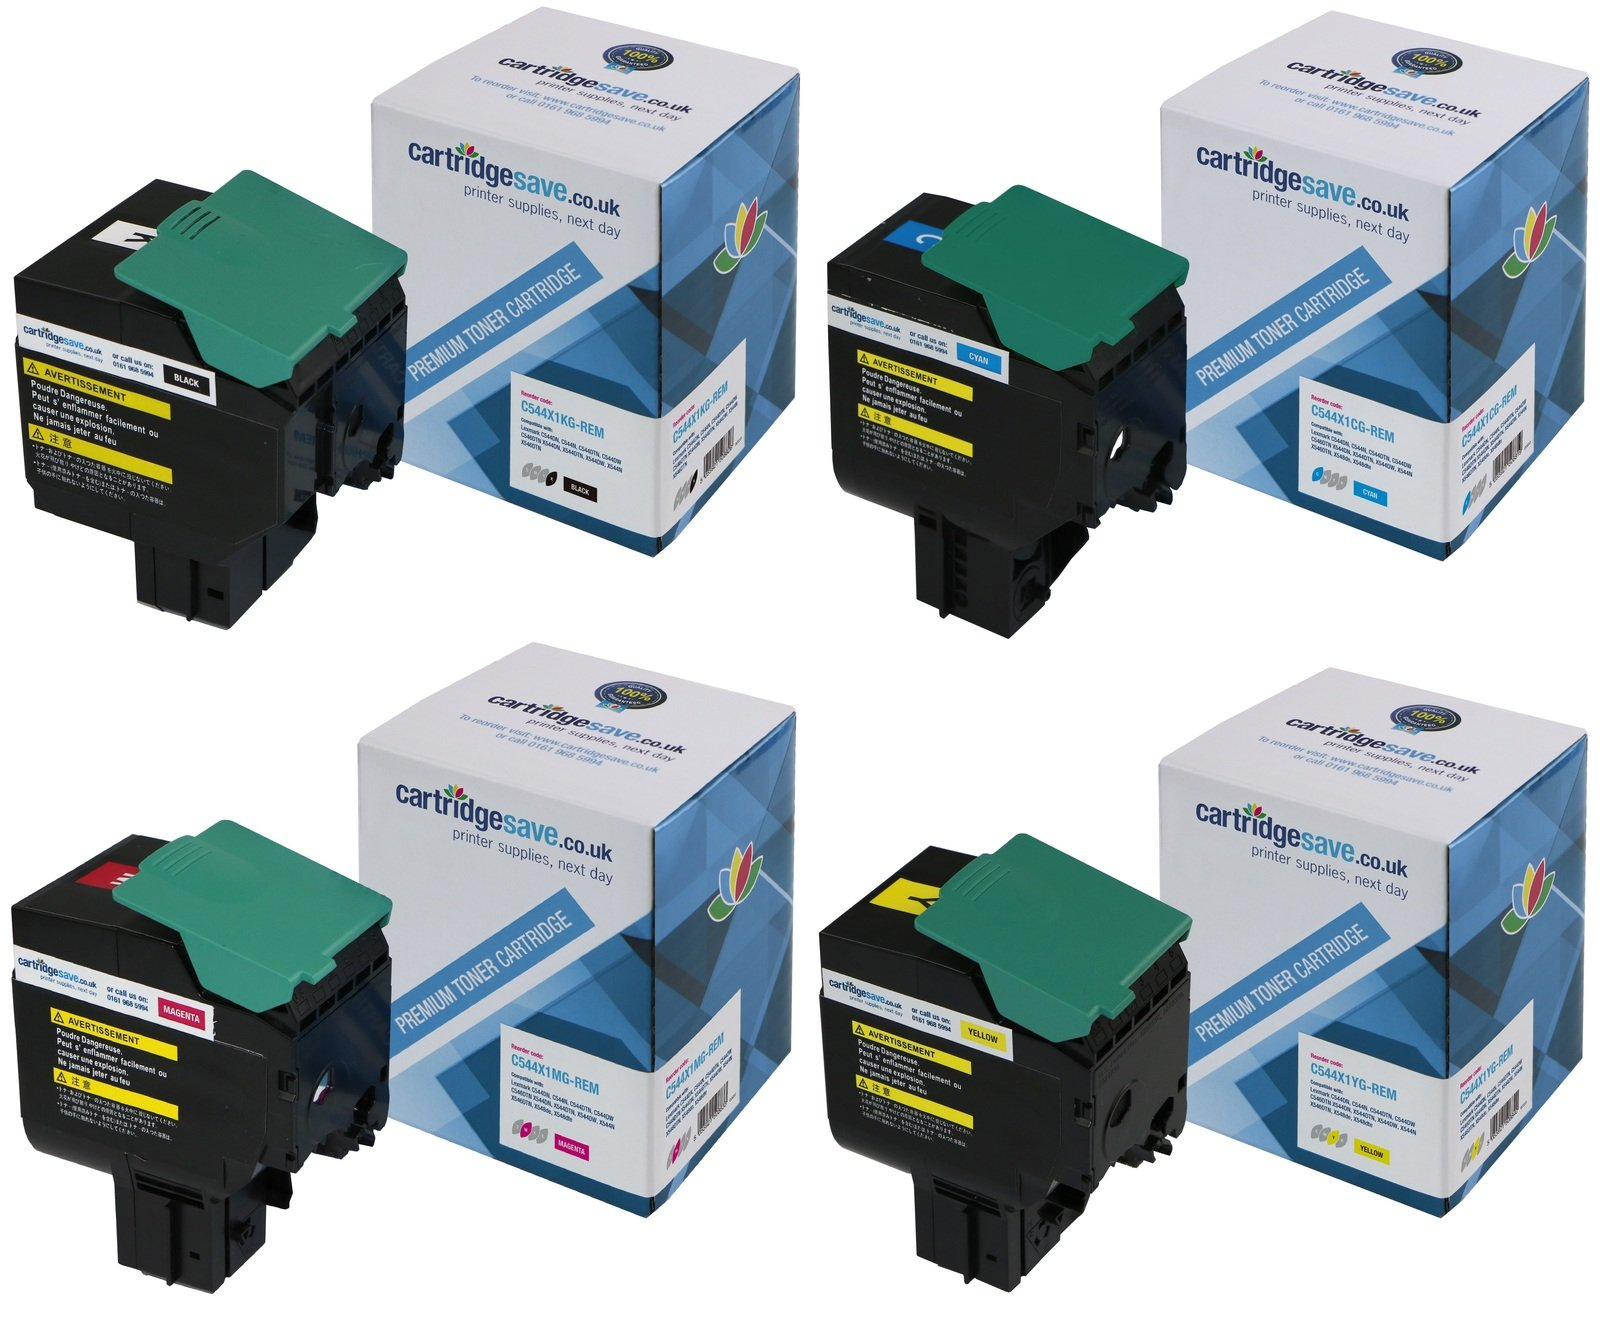 Compatible Extra High Capacity 4 Colour Lexmark C544X1 Toner Multipack - (C544X1KG/CG/MG/YG)